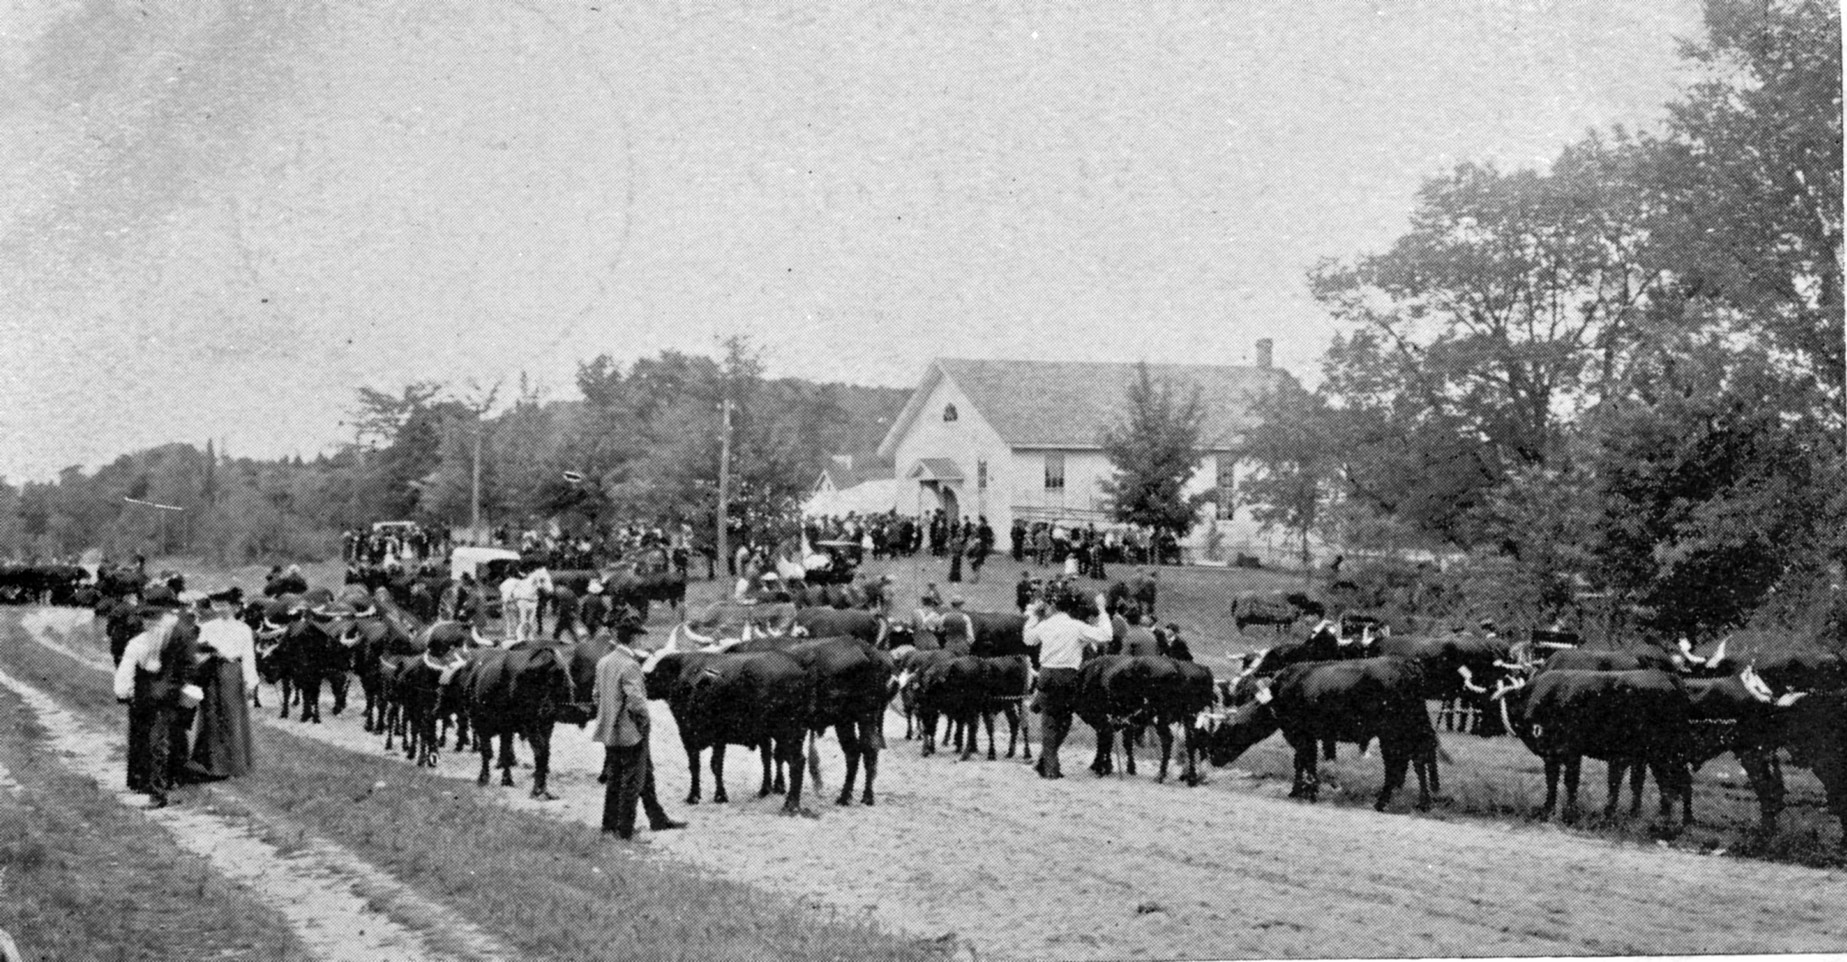 EH Grange Fair Day 1908.jpg